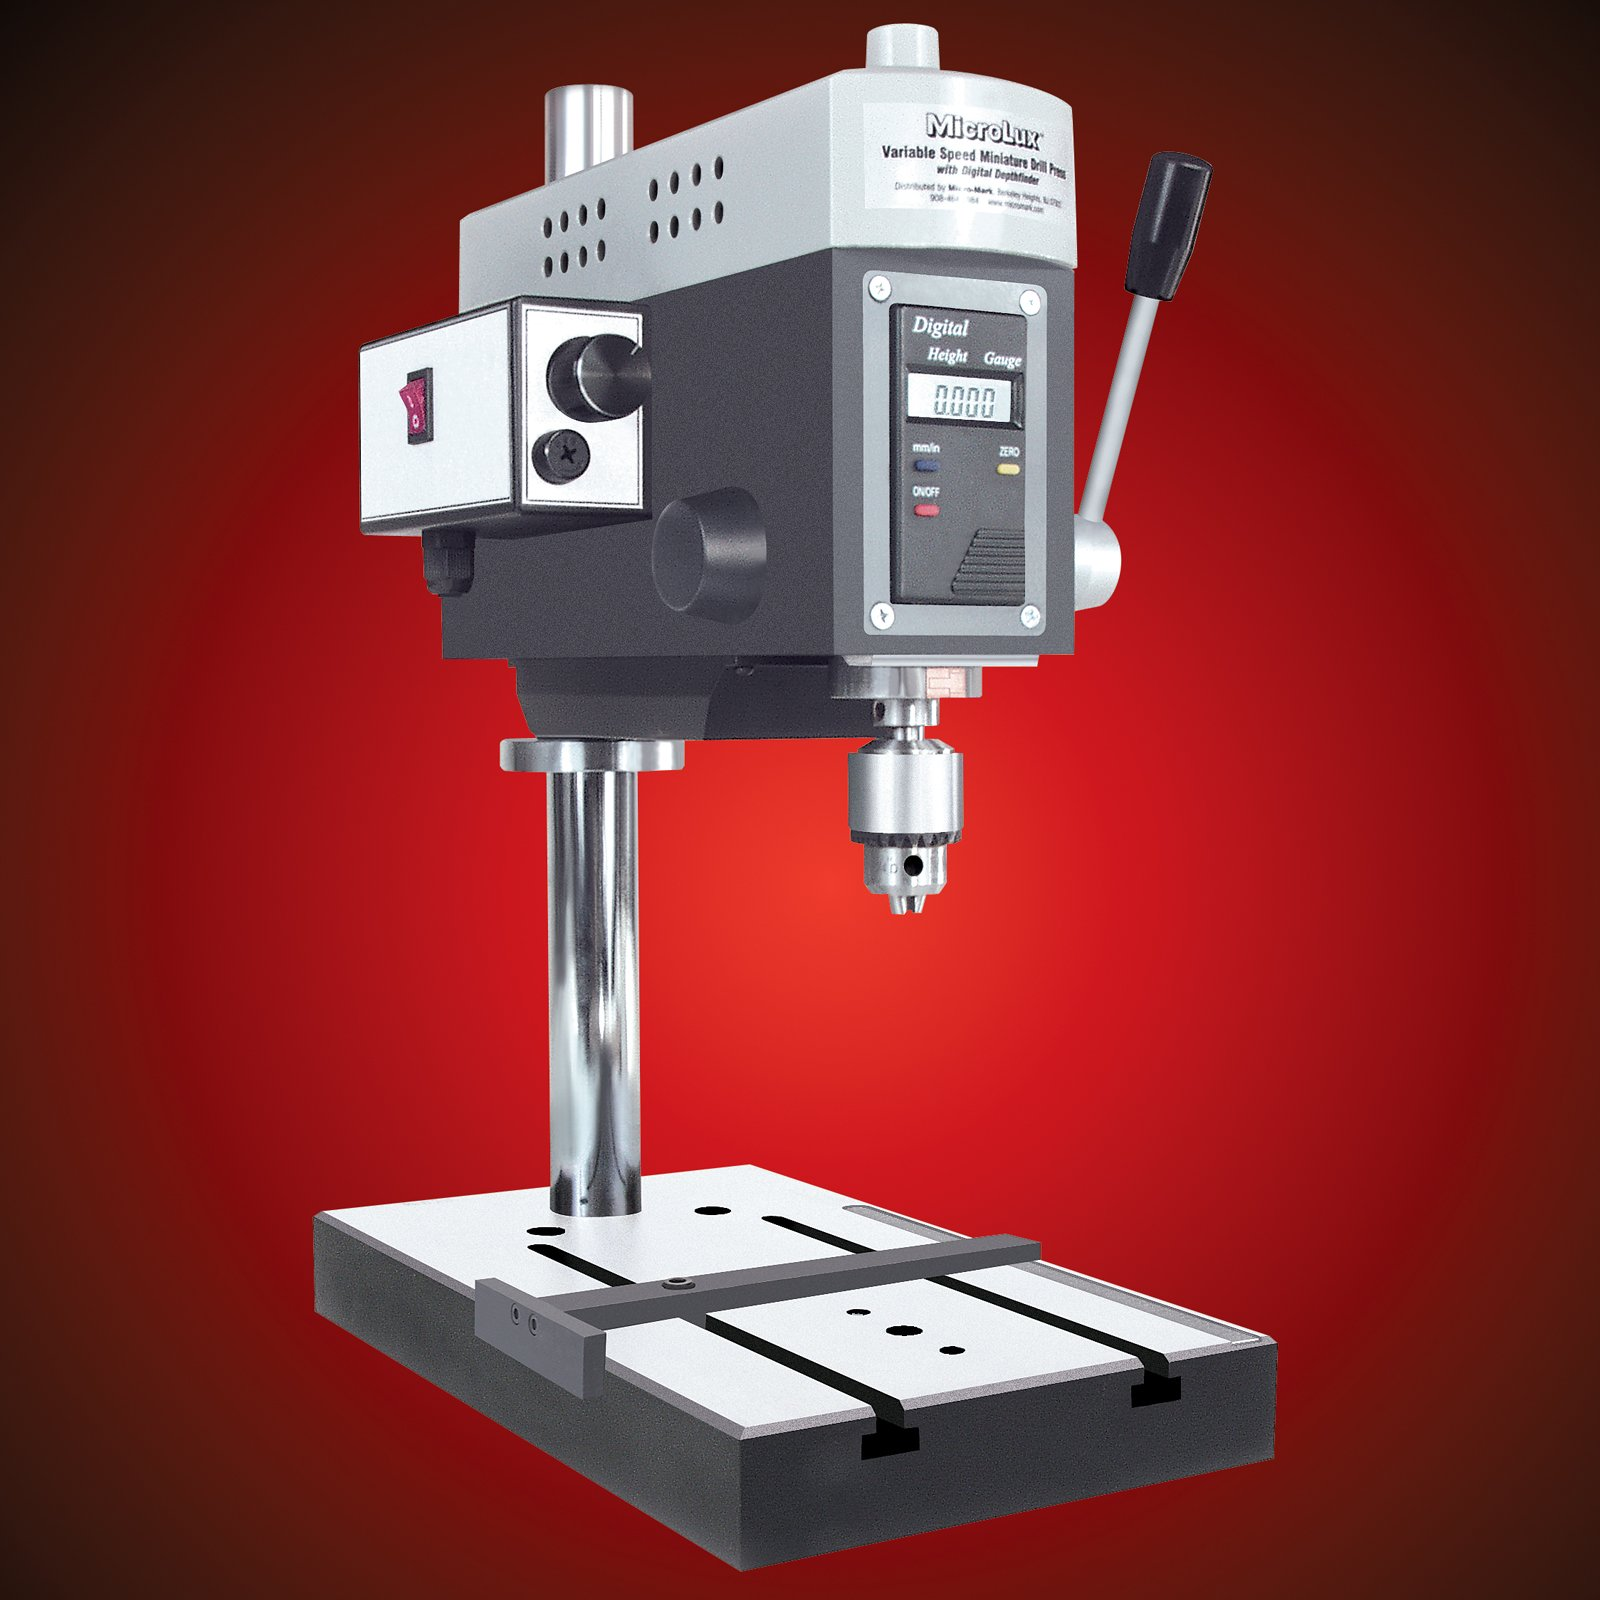 MicroLux Benchtop Variable Speed Mini Hobby Drill Press